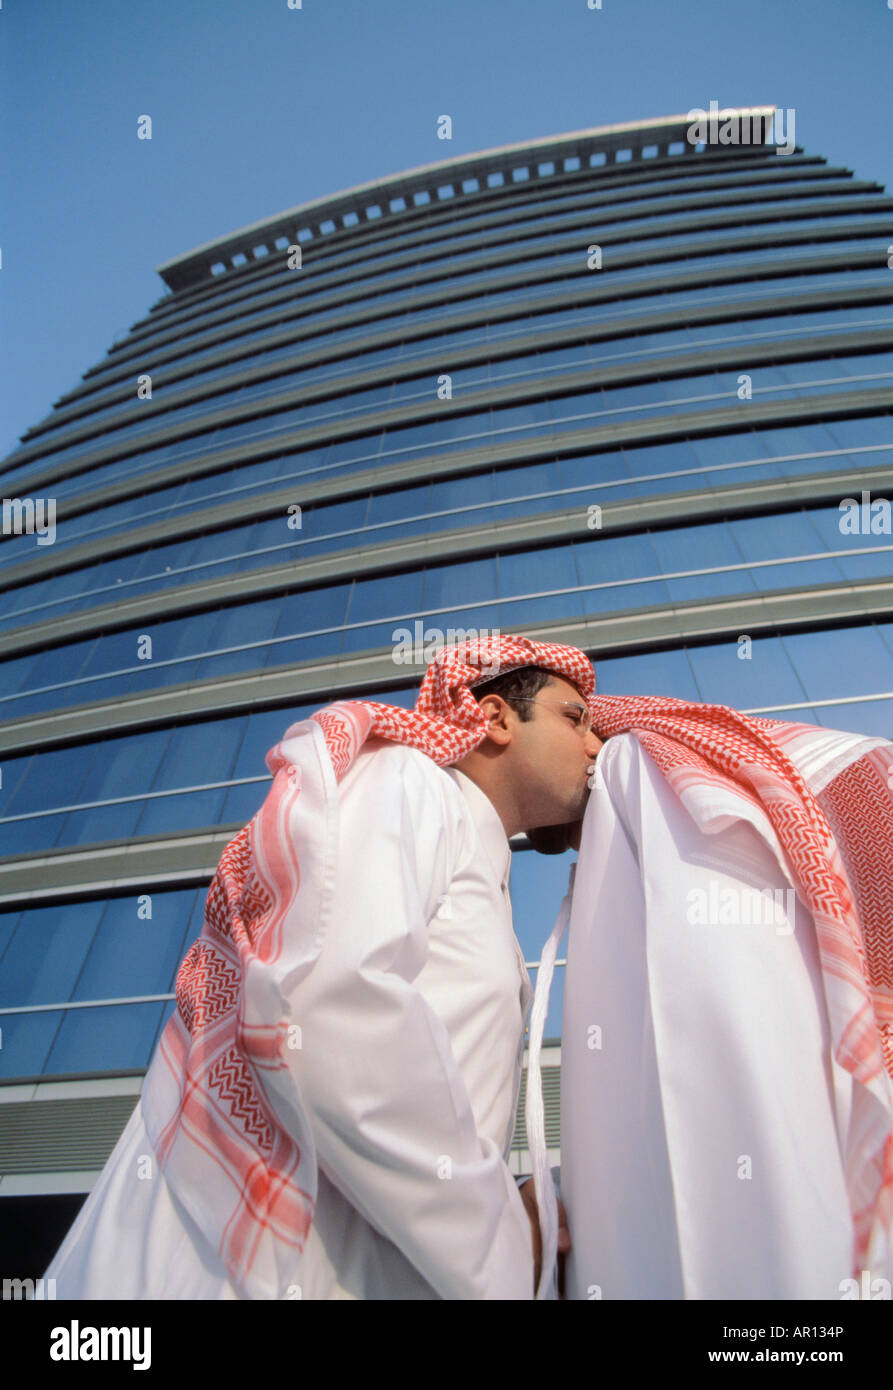 Arab men greeting each other stock photo 15903717 alamy arab men greeting each other m4hsunfo